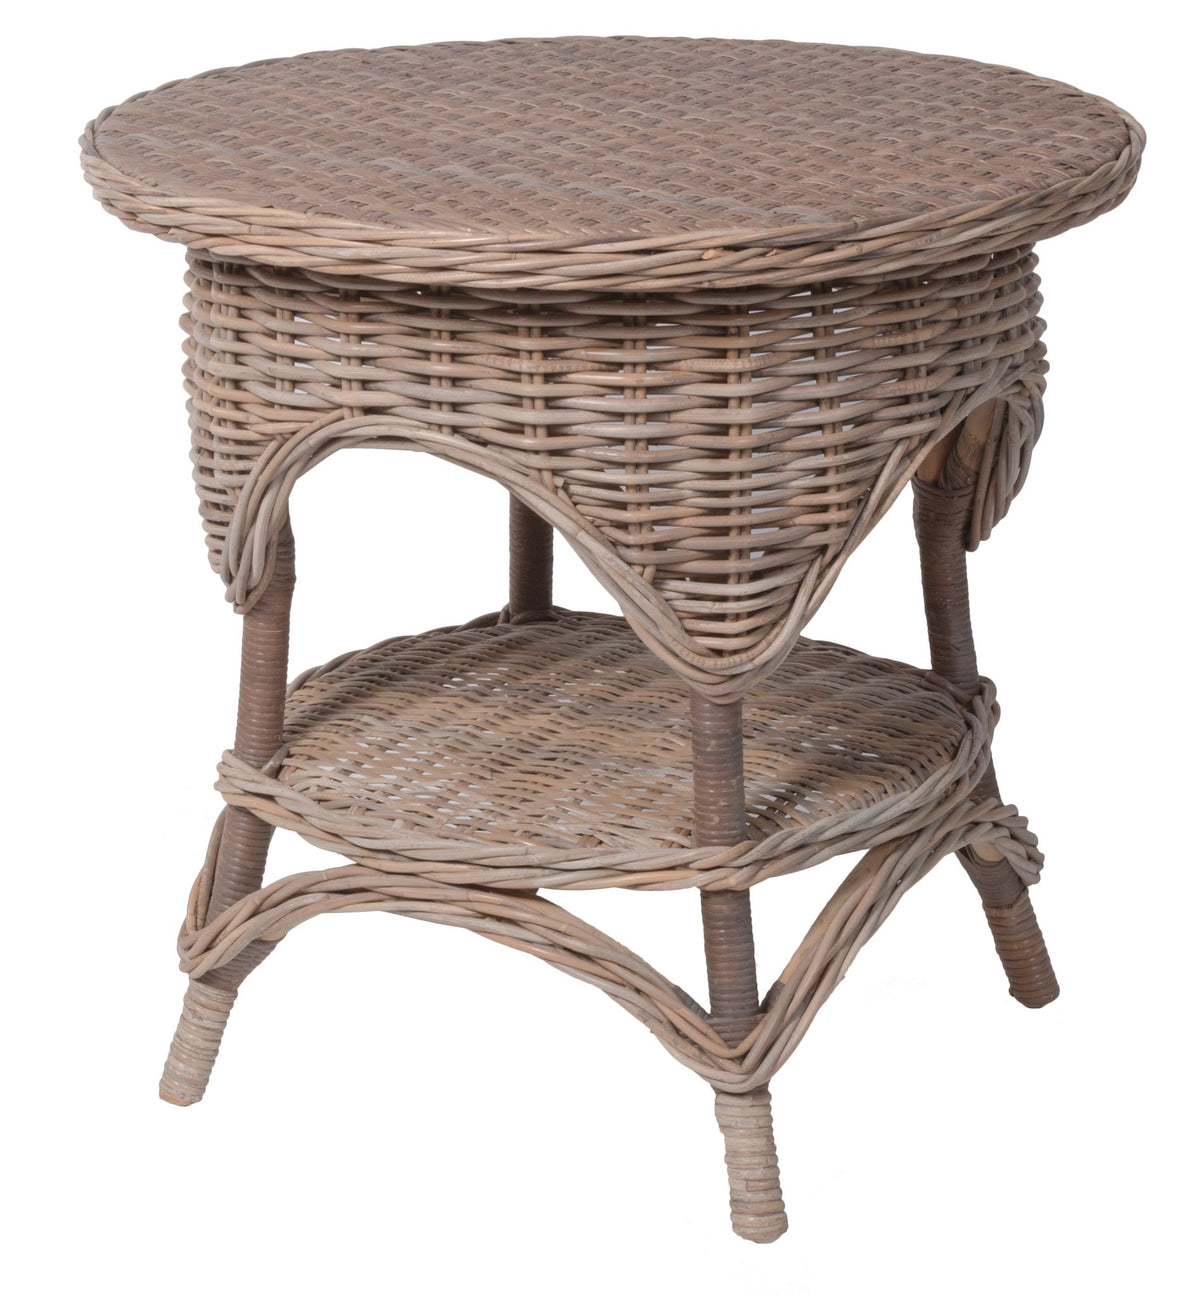 Designer Wicker & Rattan By Tribor Conservatory End Table End Table - Rattan Imports